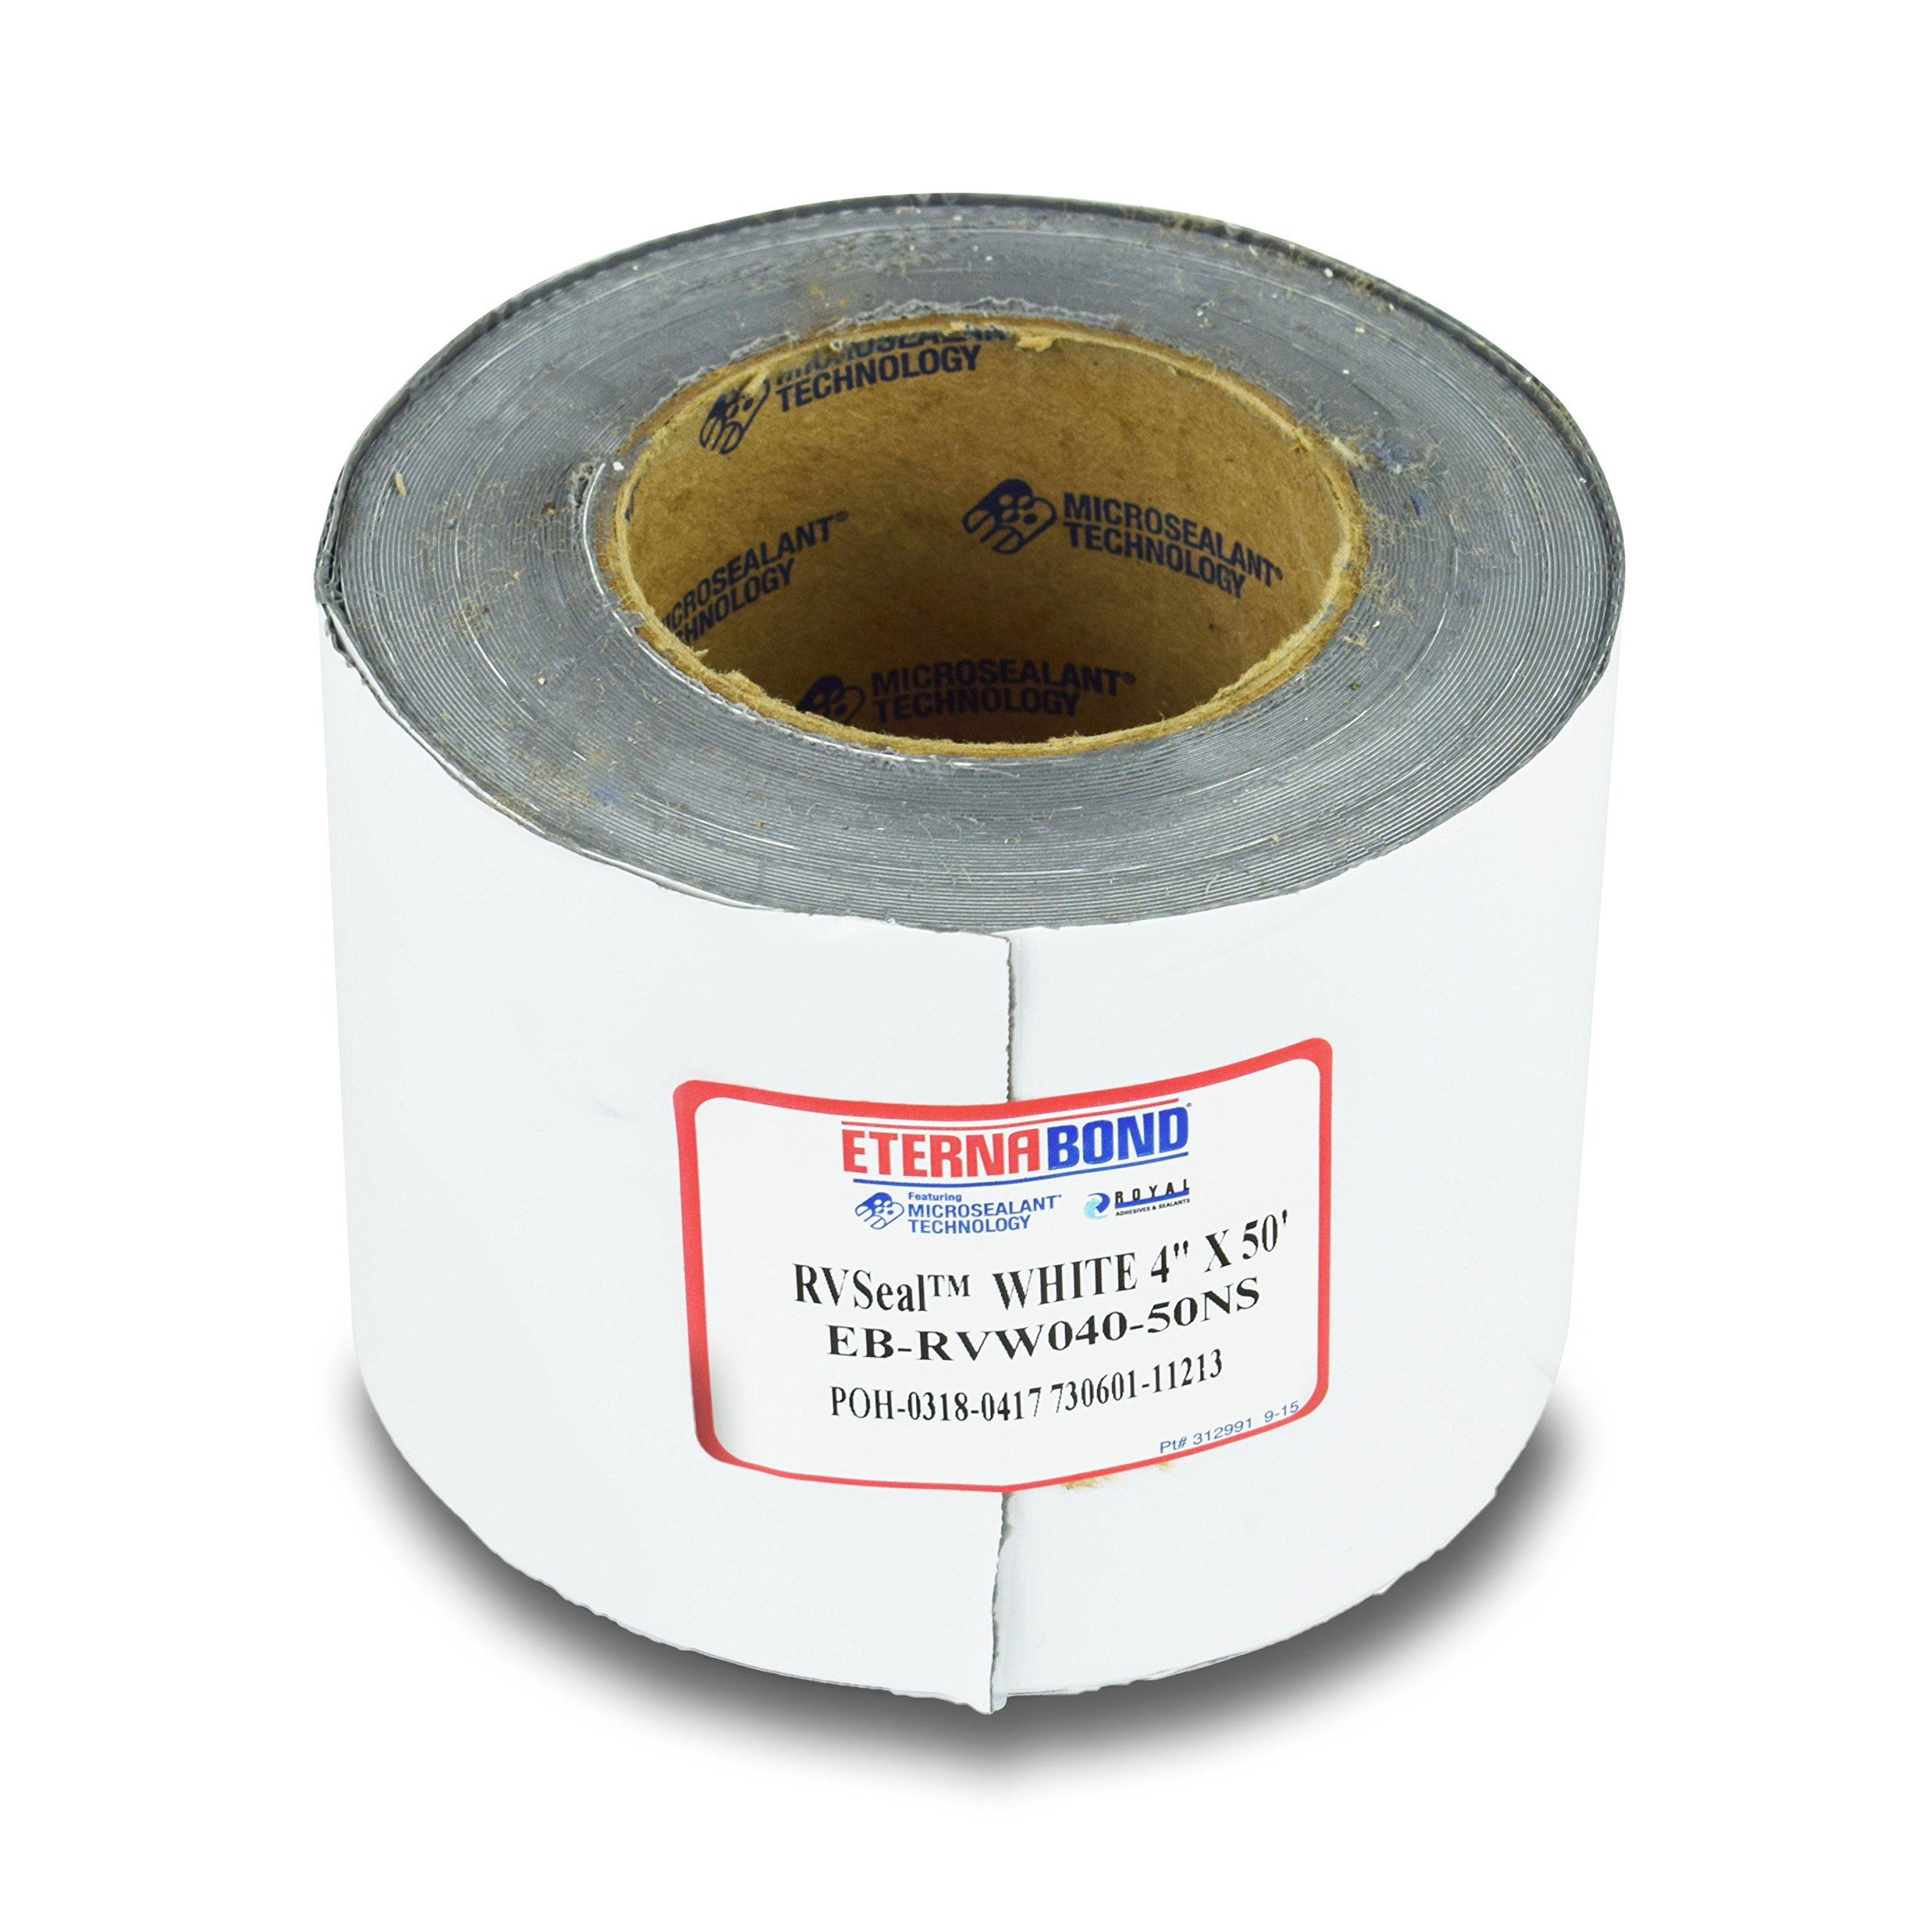 EternaBond RV Mobile Home Roof Seal Sealant Tape & Leak Repair Tape 4'' x 50' Roll White Authentic (4''-50ft) by EternaBond